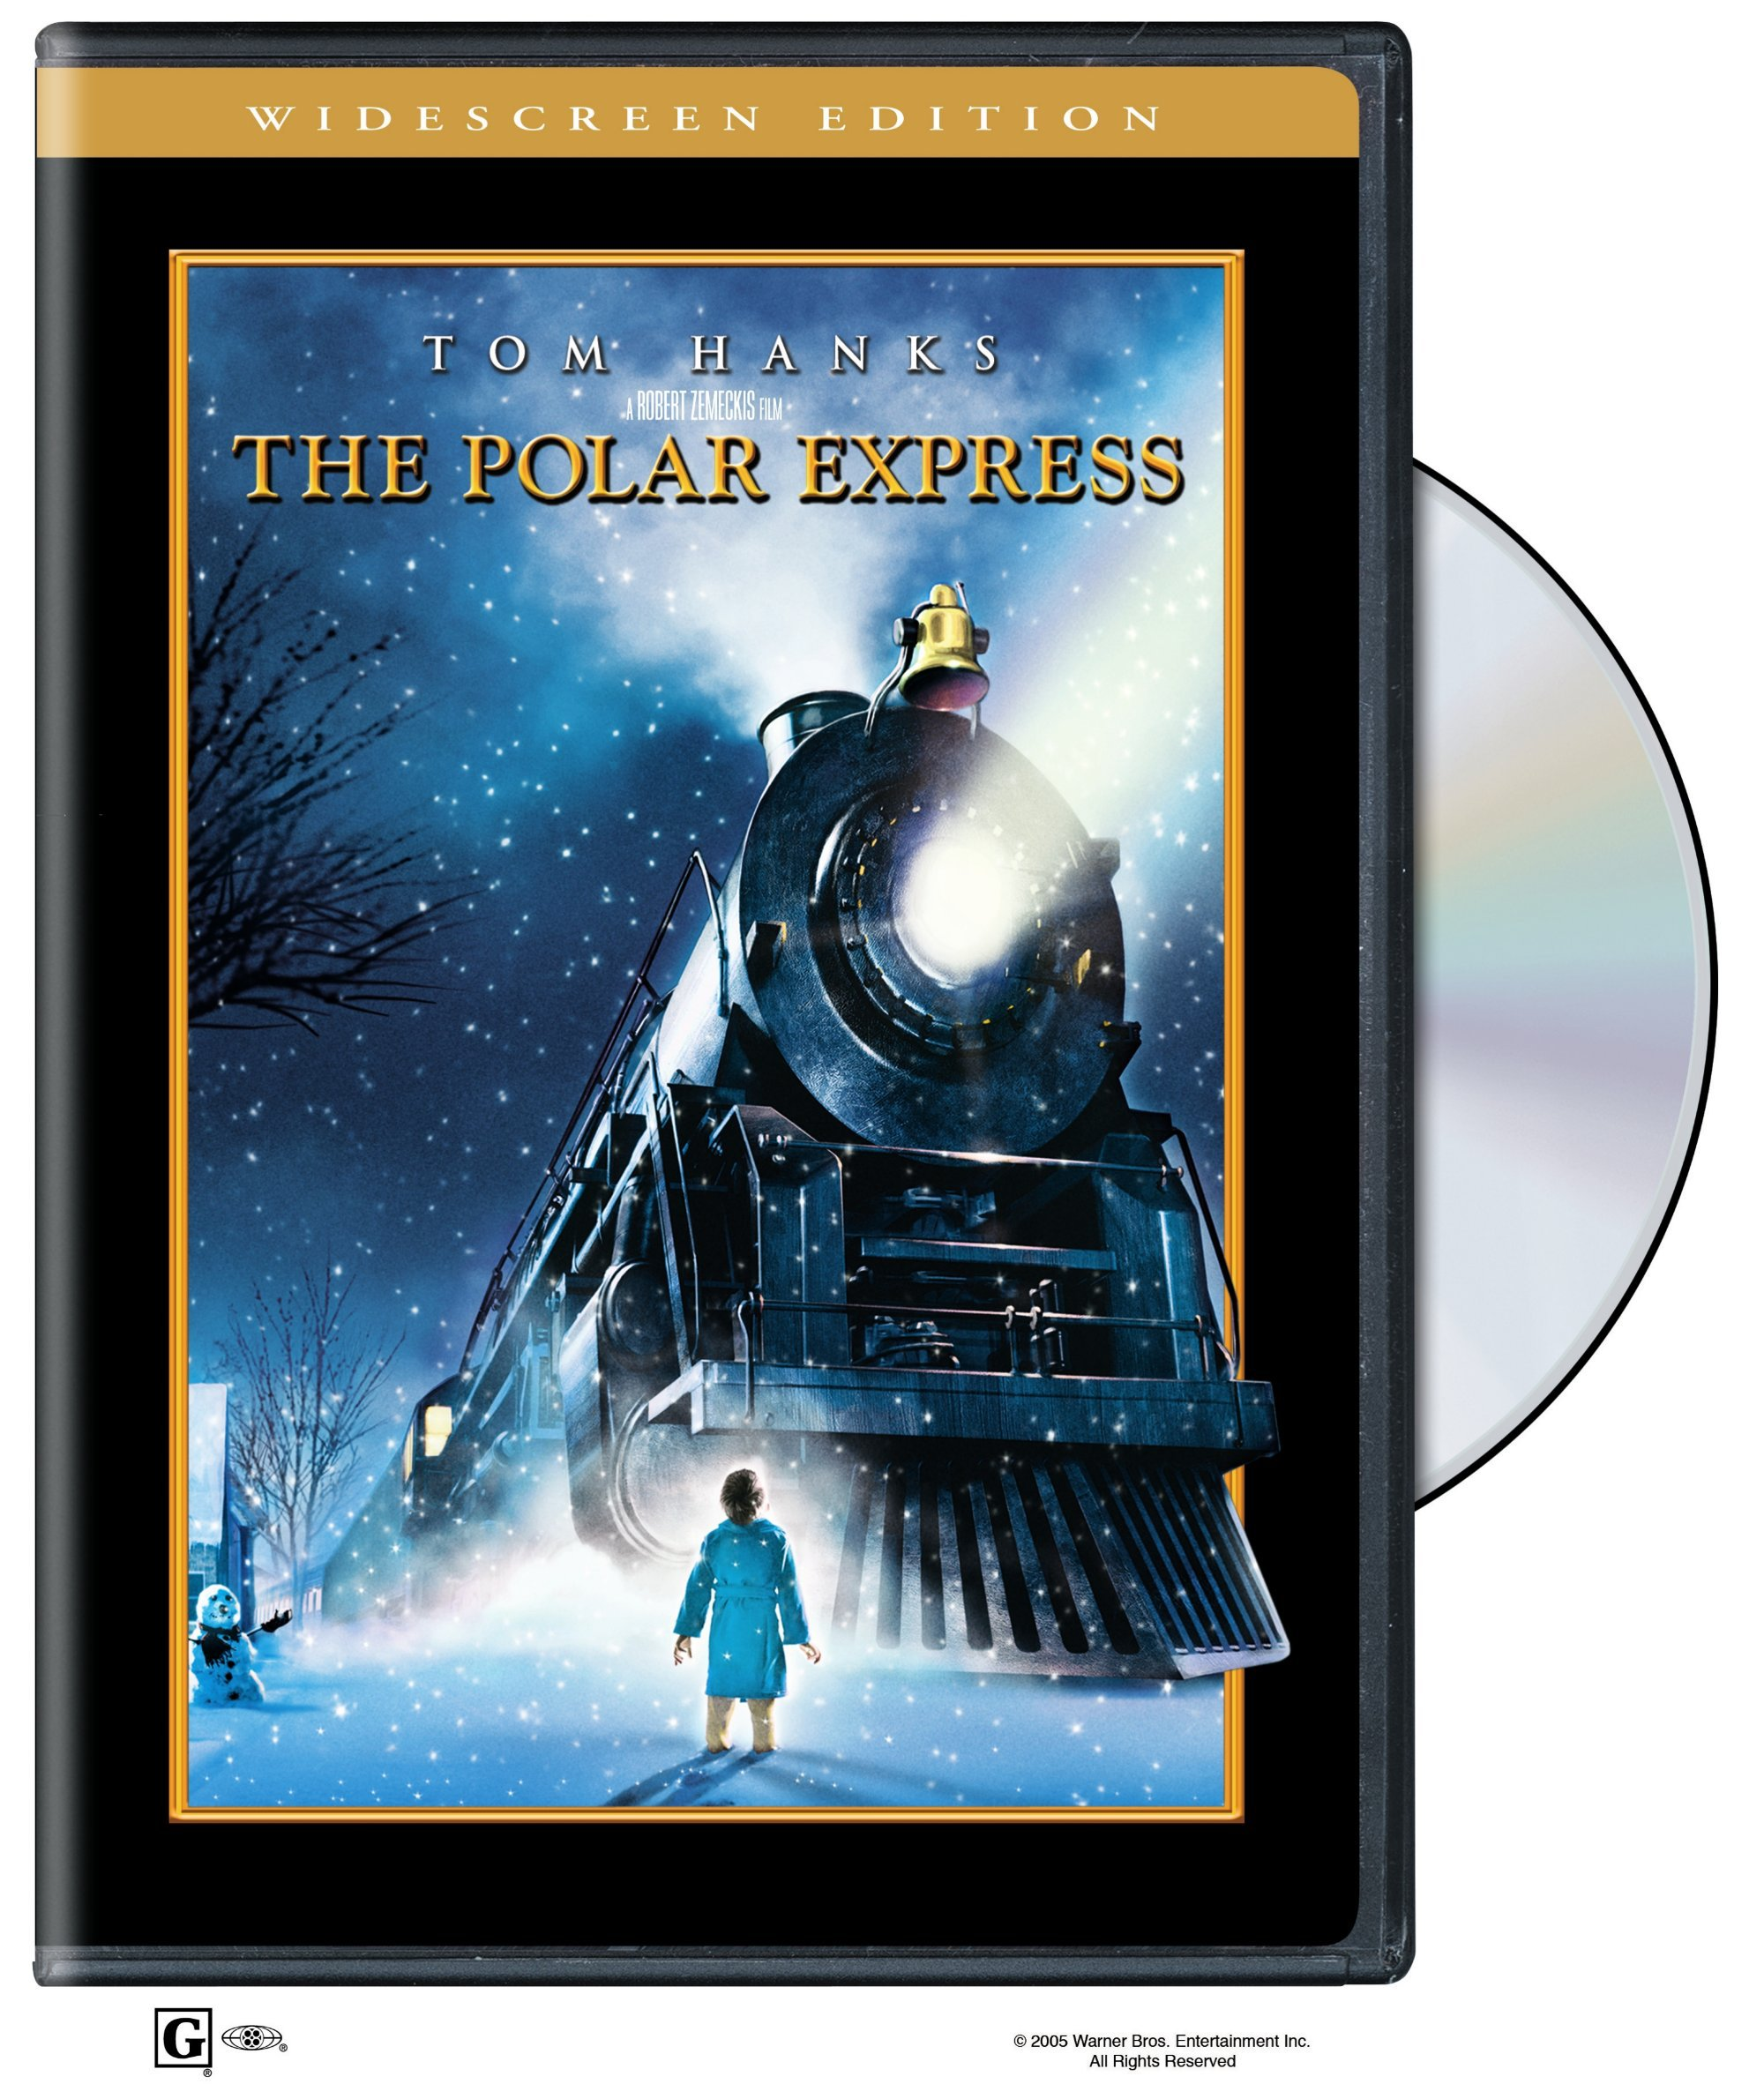 DVD : The Polar Express (AC-3, Widescreen, , Dubbed, Dolby)